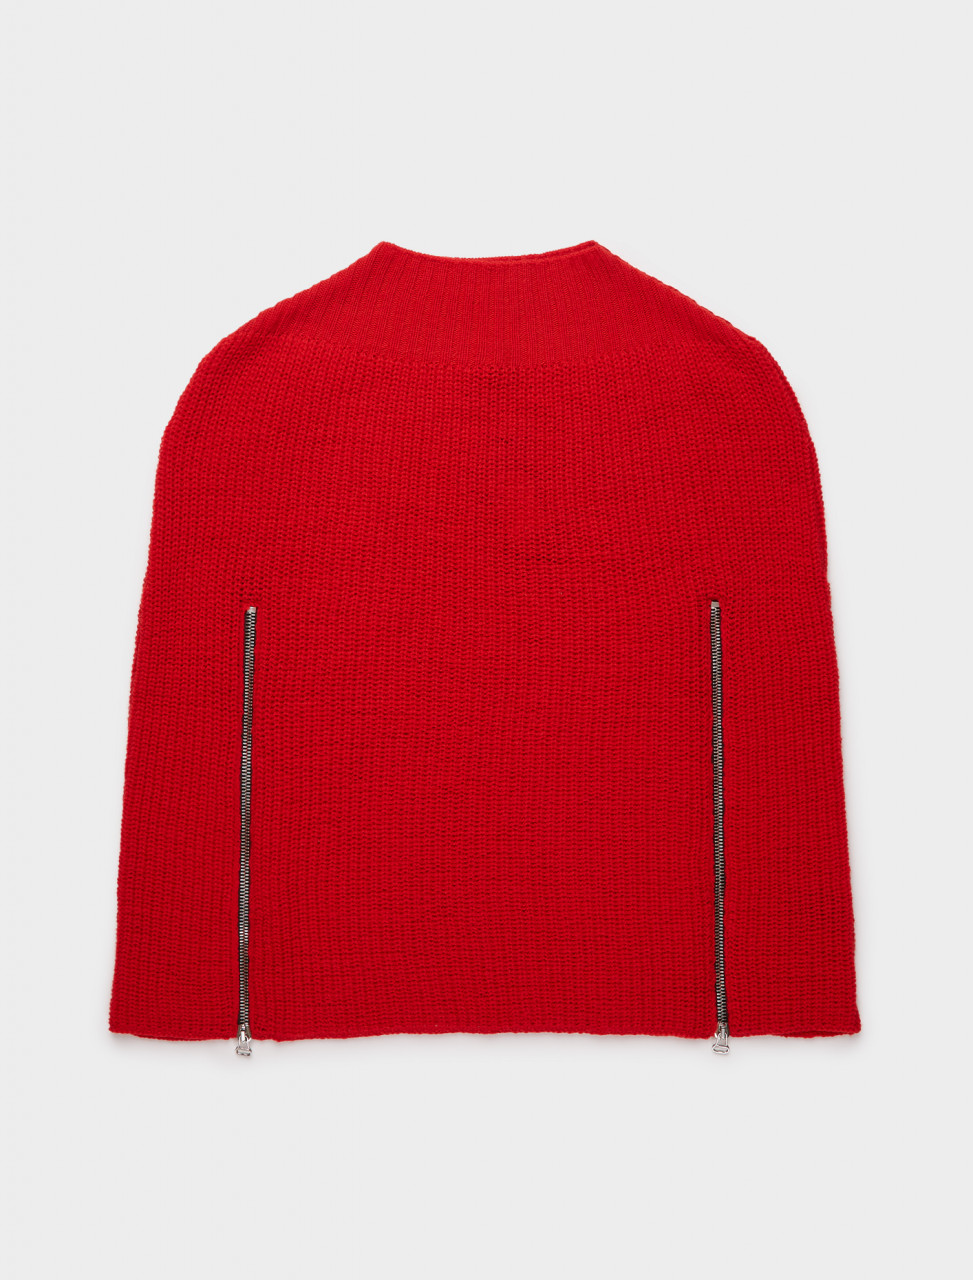 162-202-822-50011-00030 RAF SIMONS TRANSFORMER CAPE W DOUBLE ZIPPERS RED